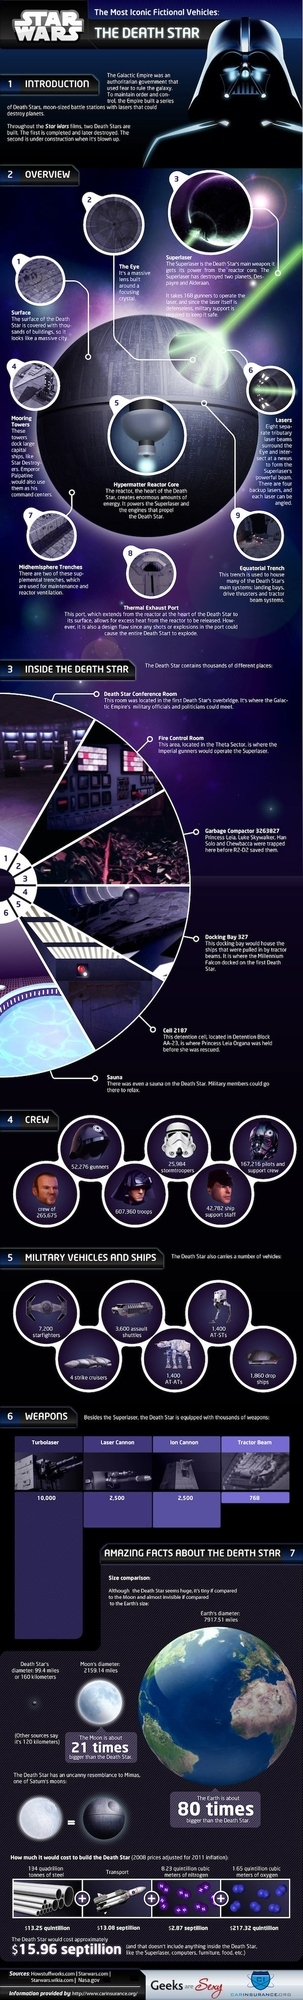 Definitive Guide To The Death Star